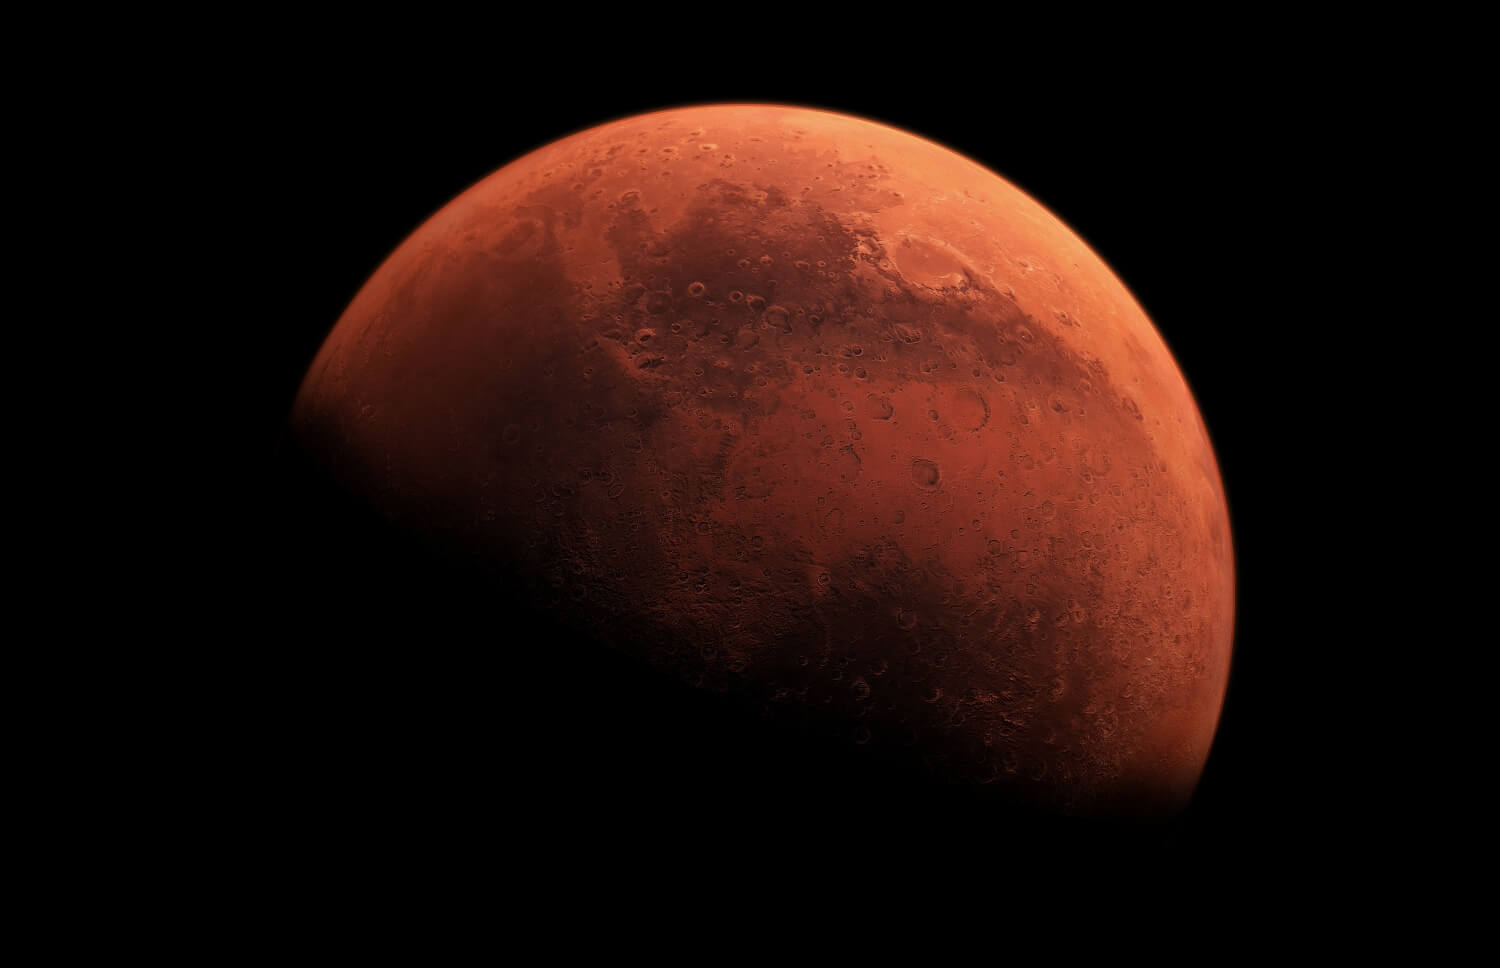 The UAE has successfully launched its first Mars mission